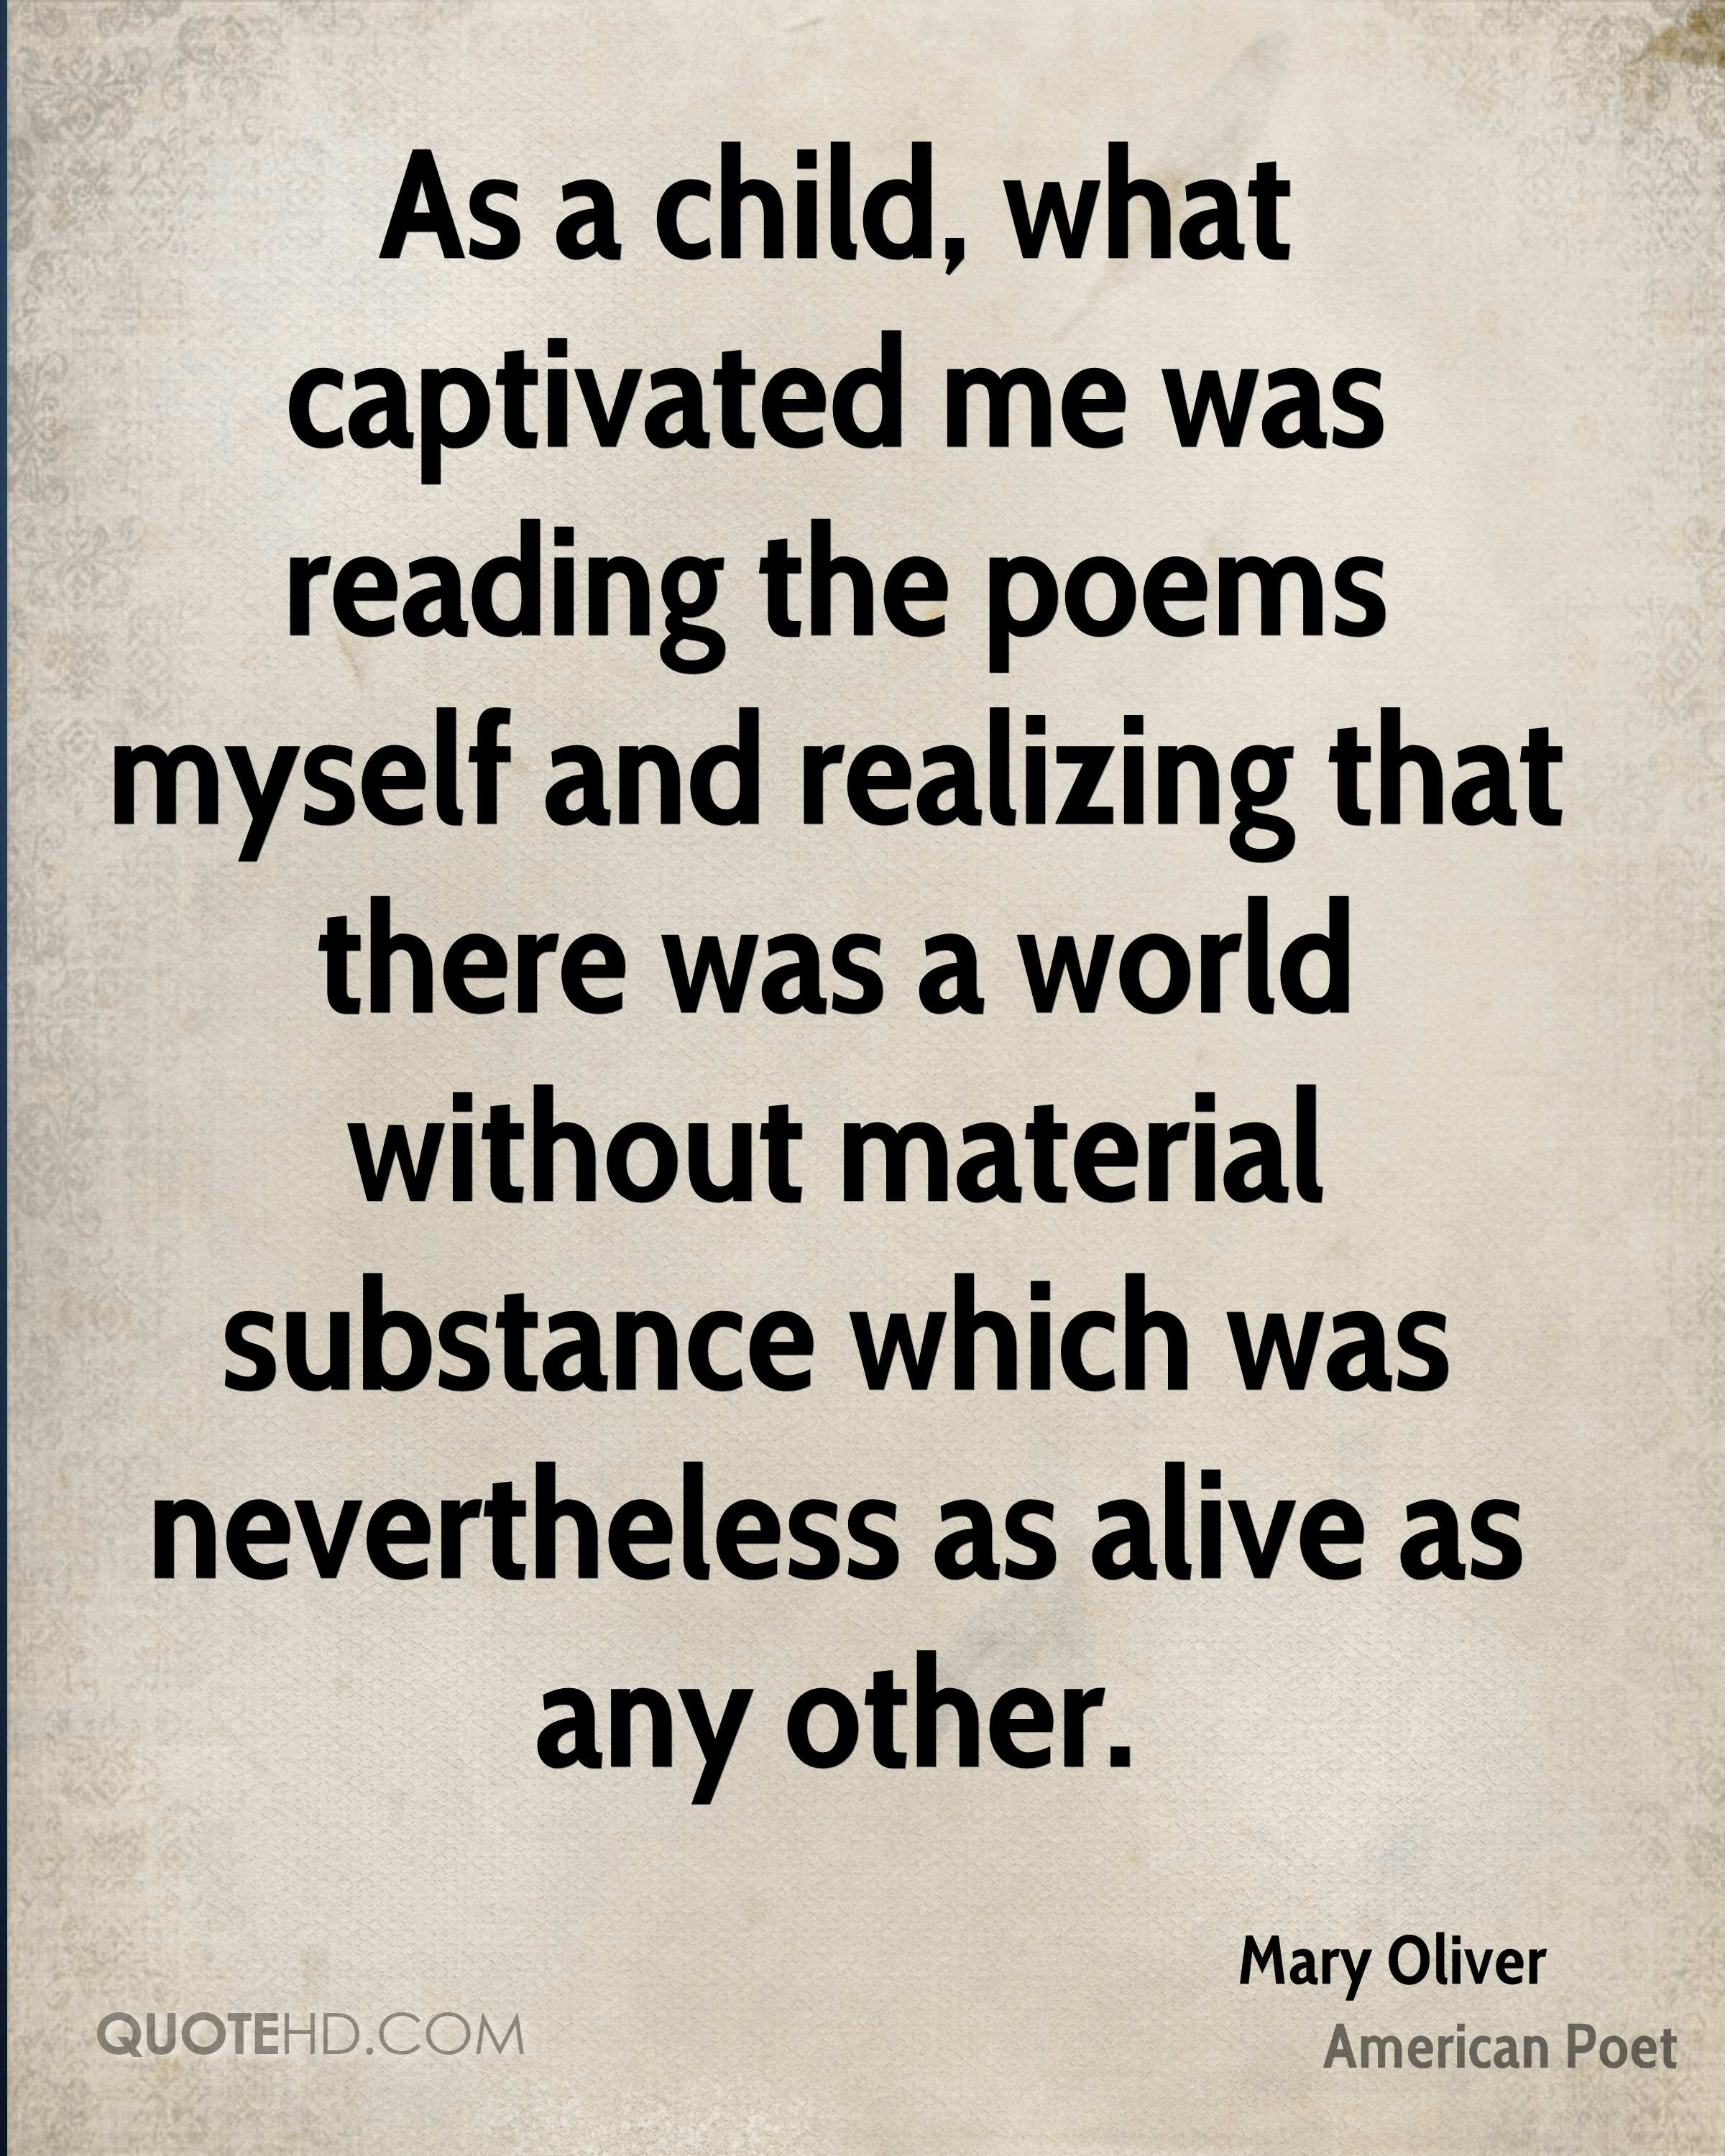 As a child, what captivated me was reading the poems myself and realizing that there was a world without material substance which was nevertheless as alive as any other.